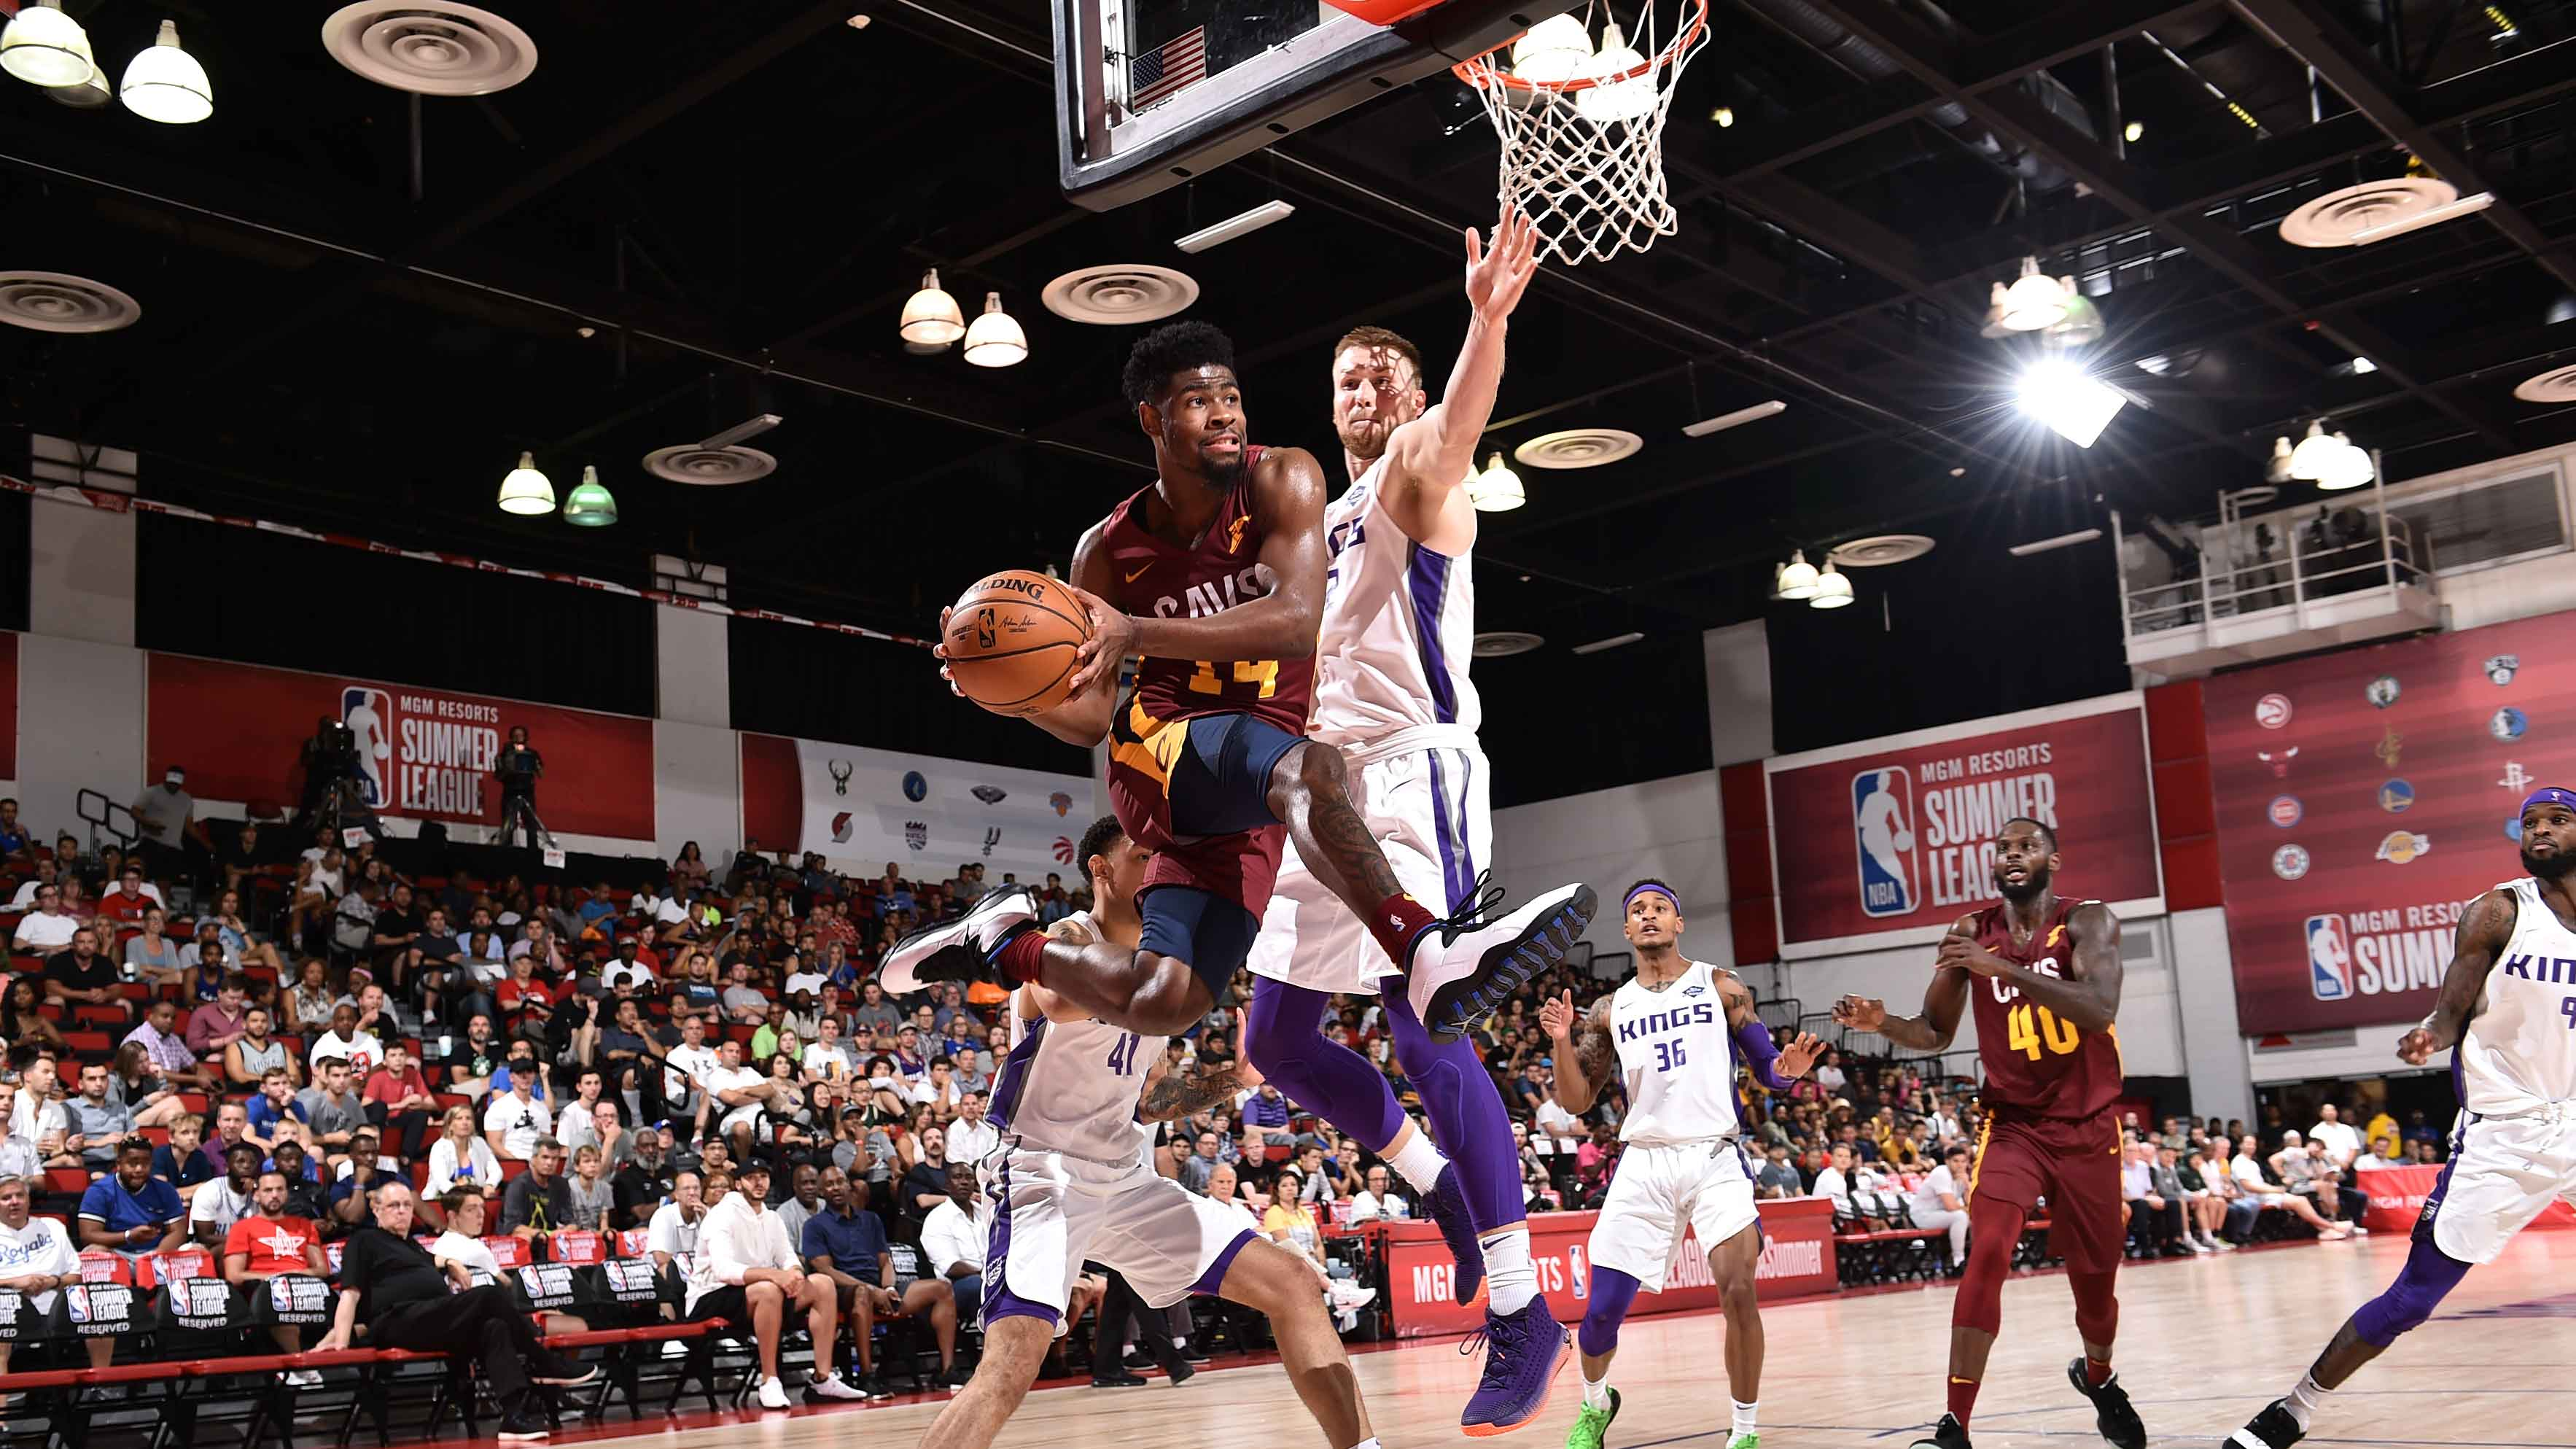 GAME RECAP: Cavaliers 98, Kings 96